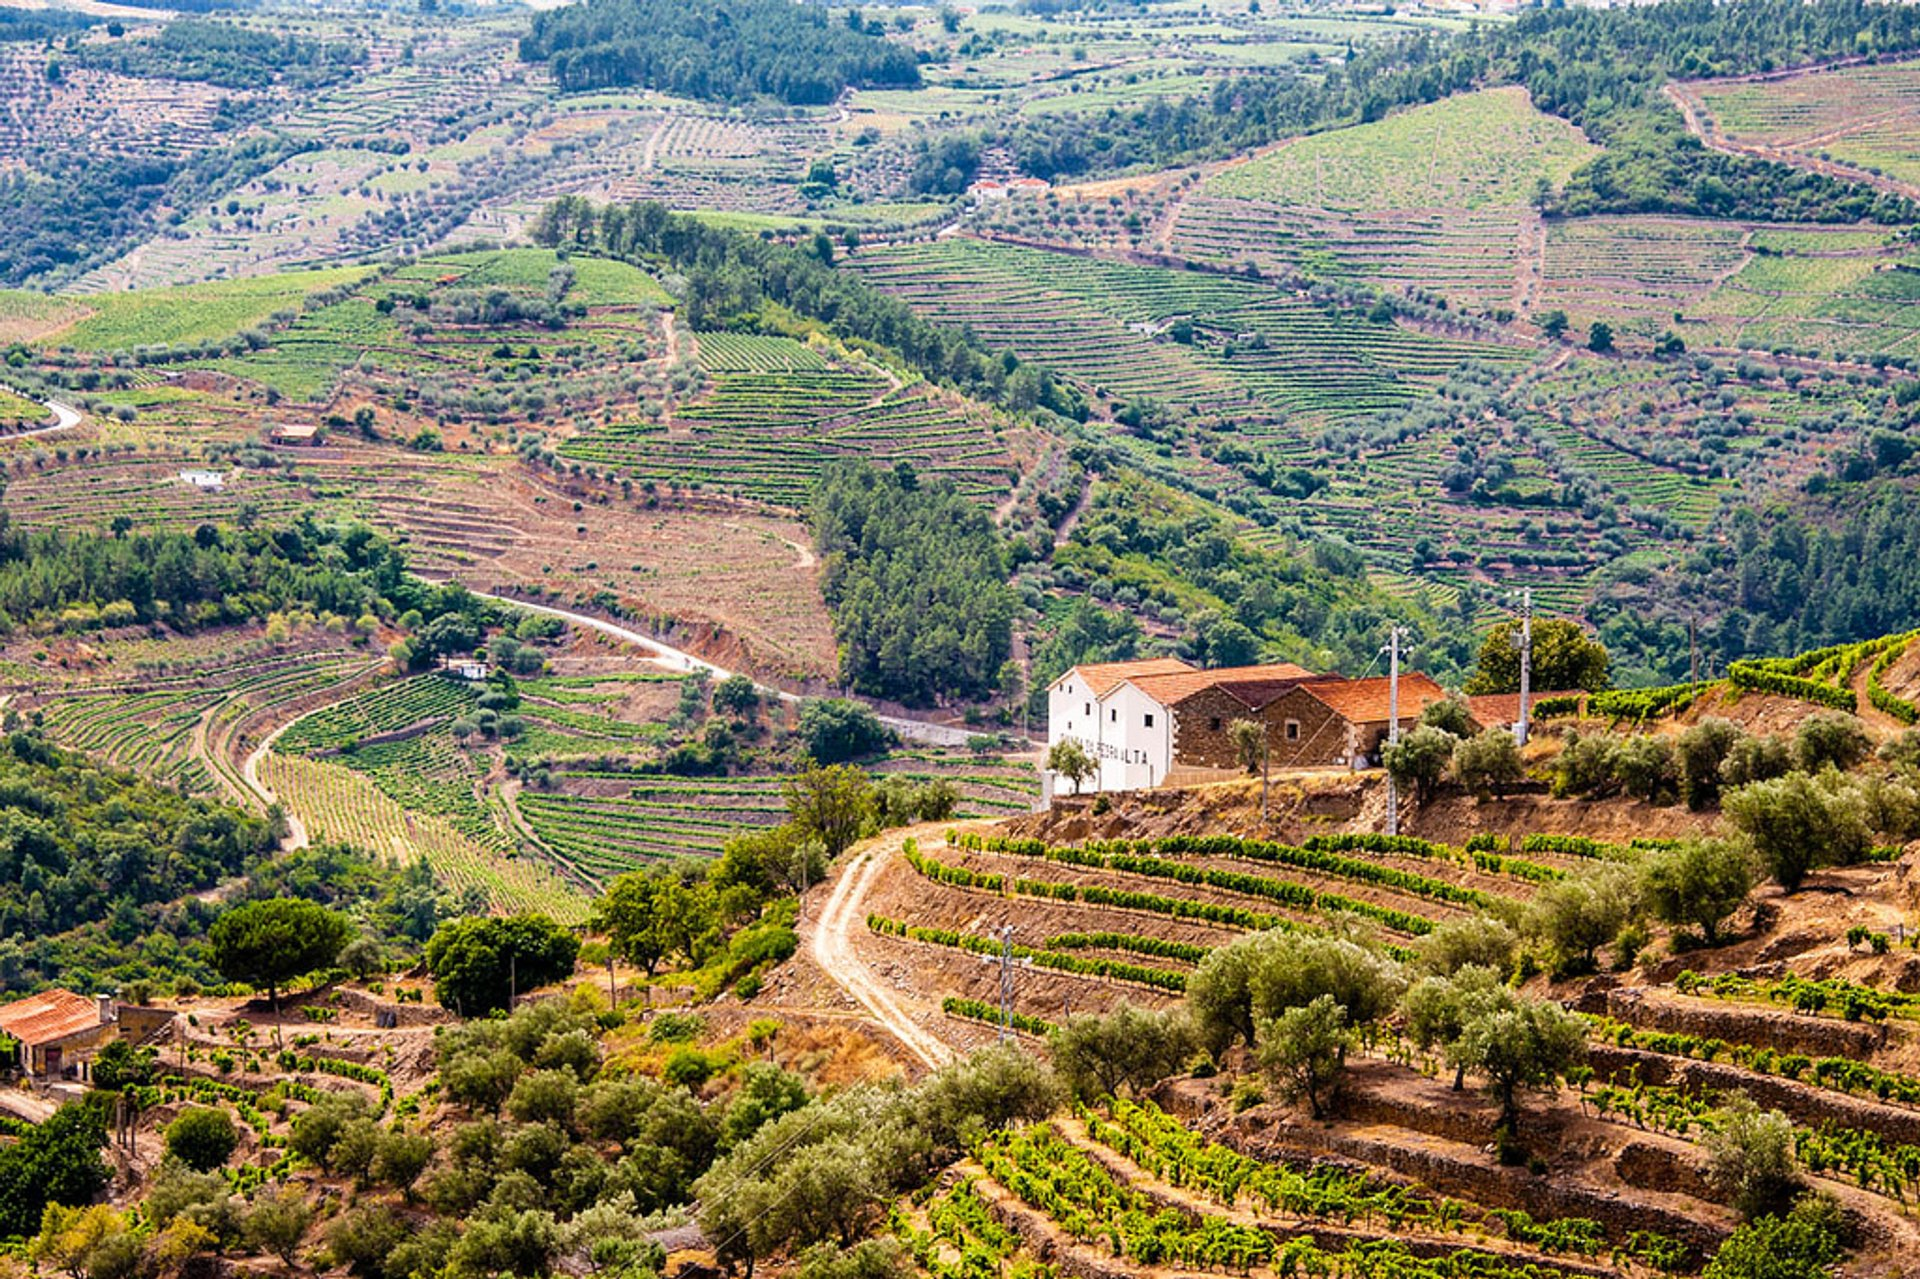 Exploring Douro Valley in Portugal 2020 - Best Time